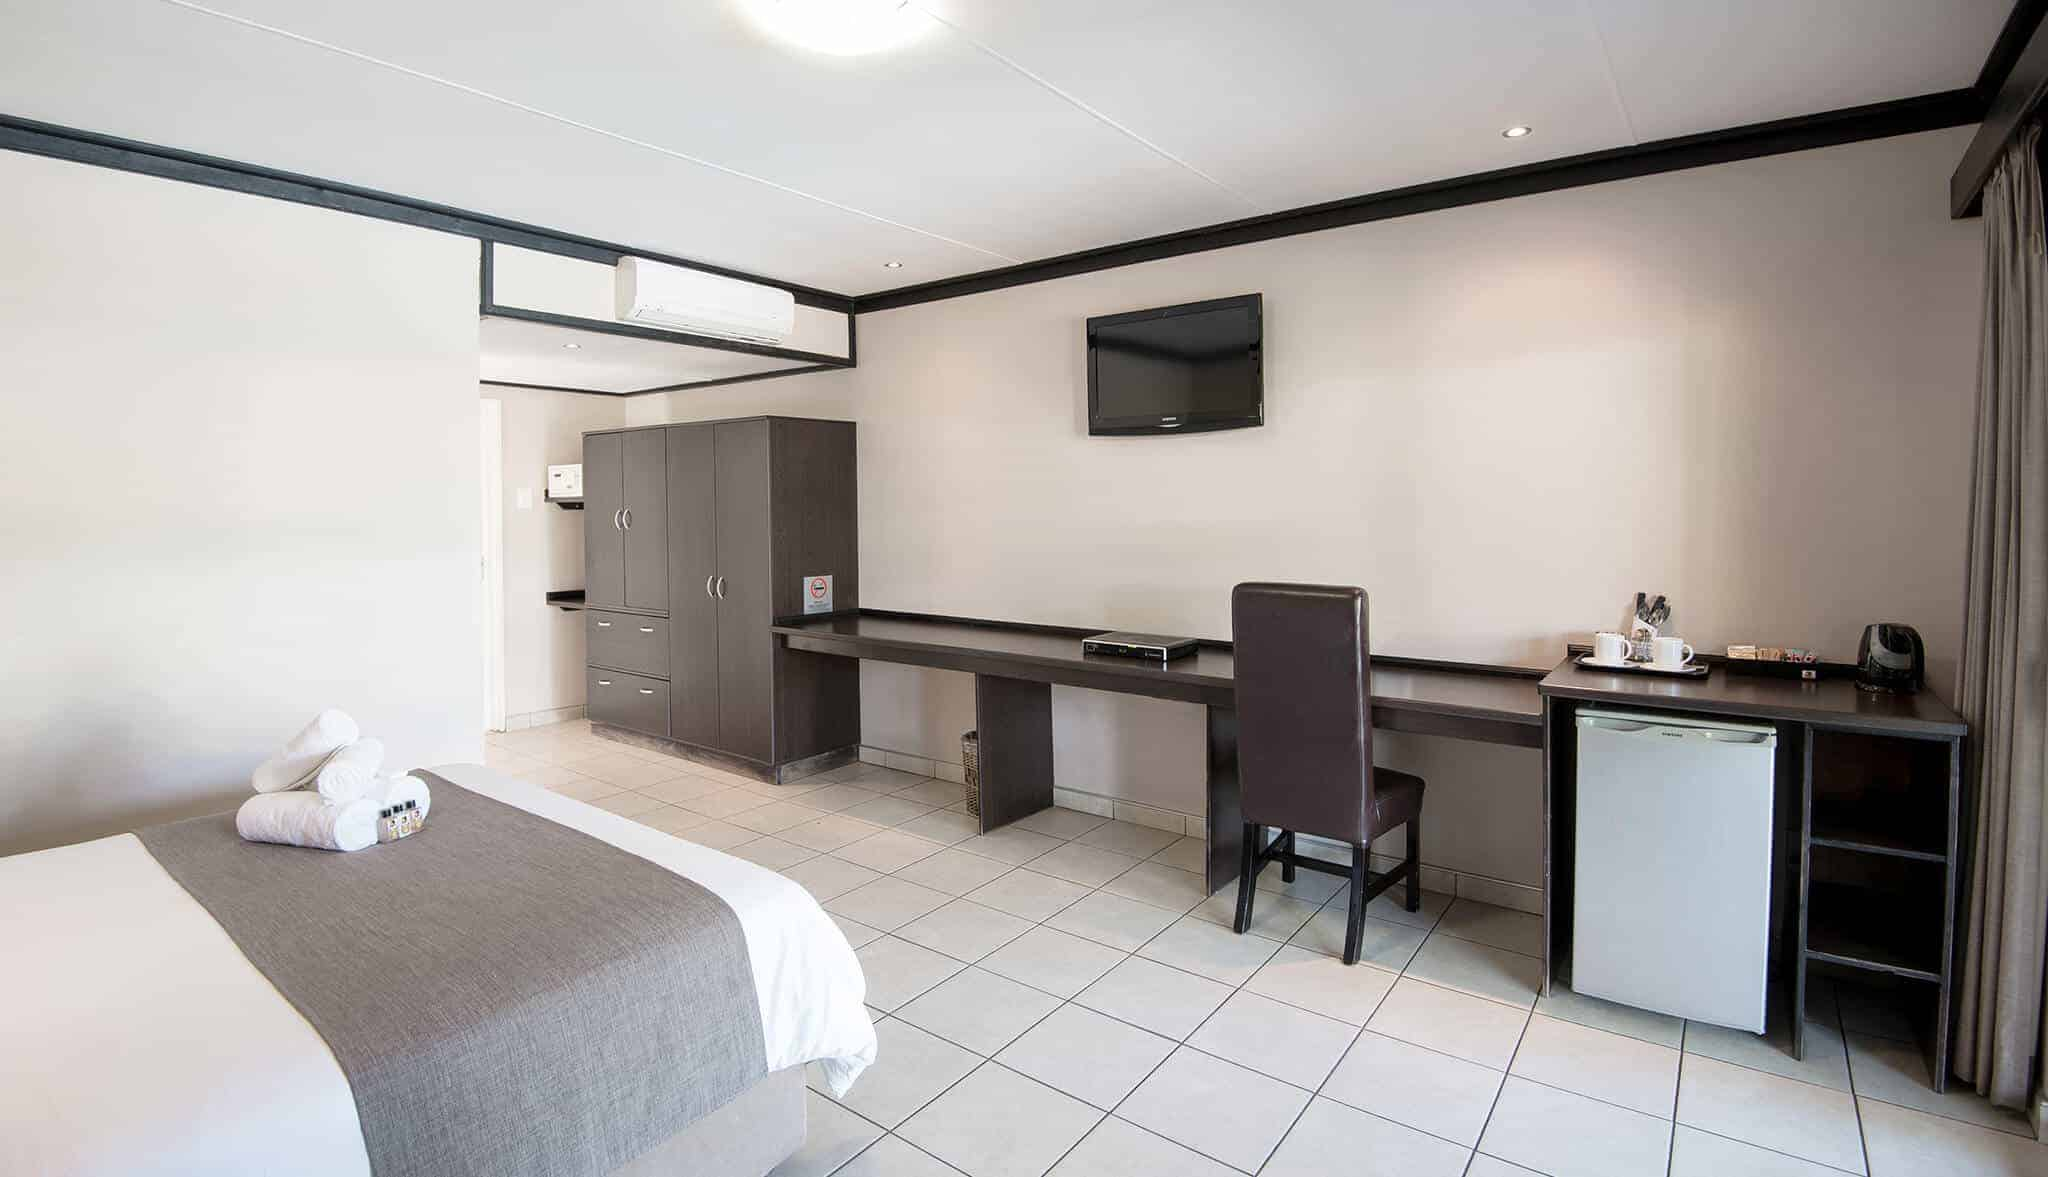 Luxury Room | Queen Bed | Bed & Breakfast Accommodation In Windhoek | Arebbusch Travel Lodge